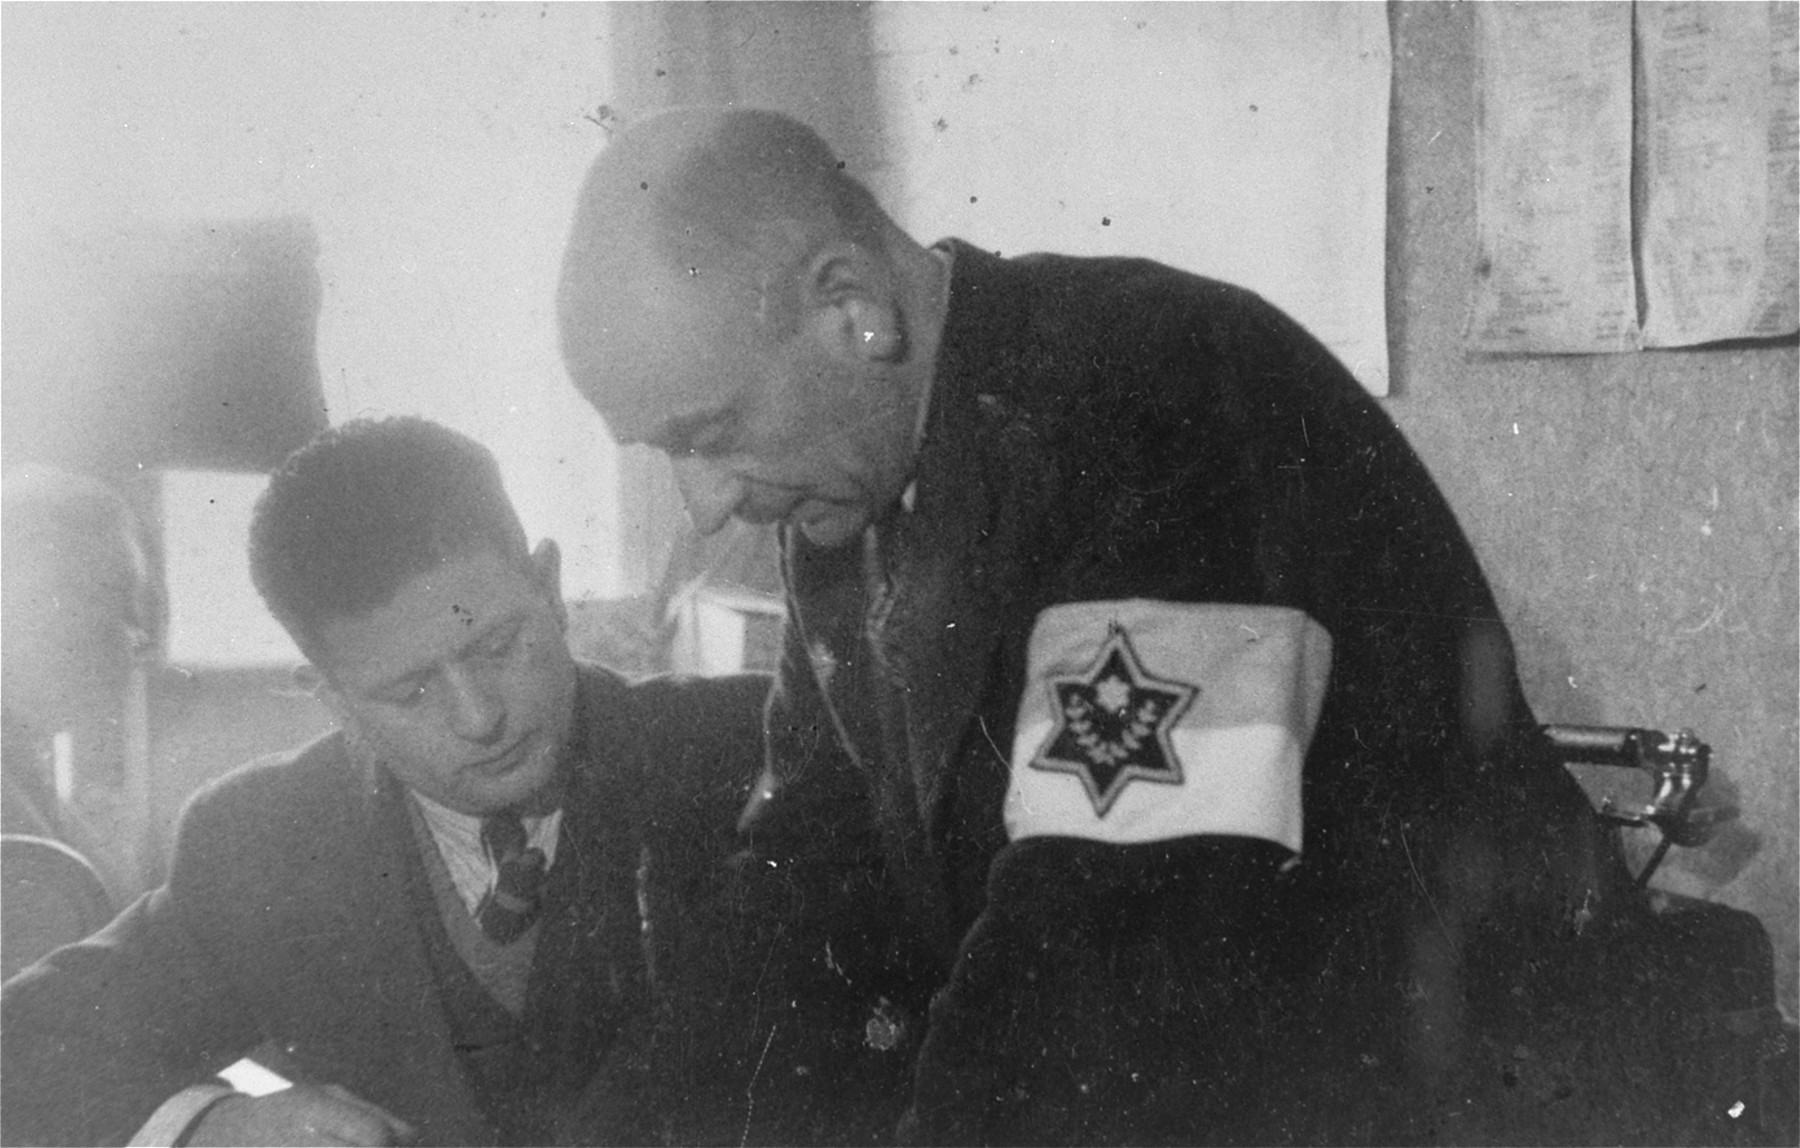 Leon Rozenblat, chief of the Lodz ghetto police (right) works with  Hermann Chimowicz in his office.